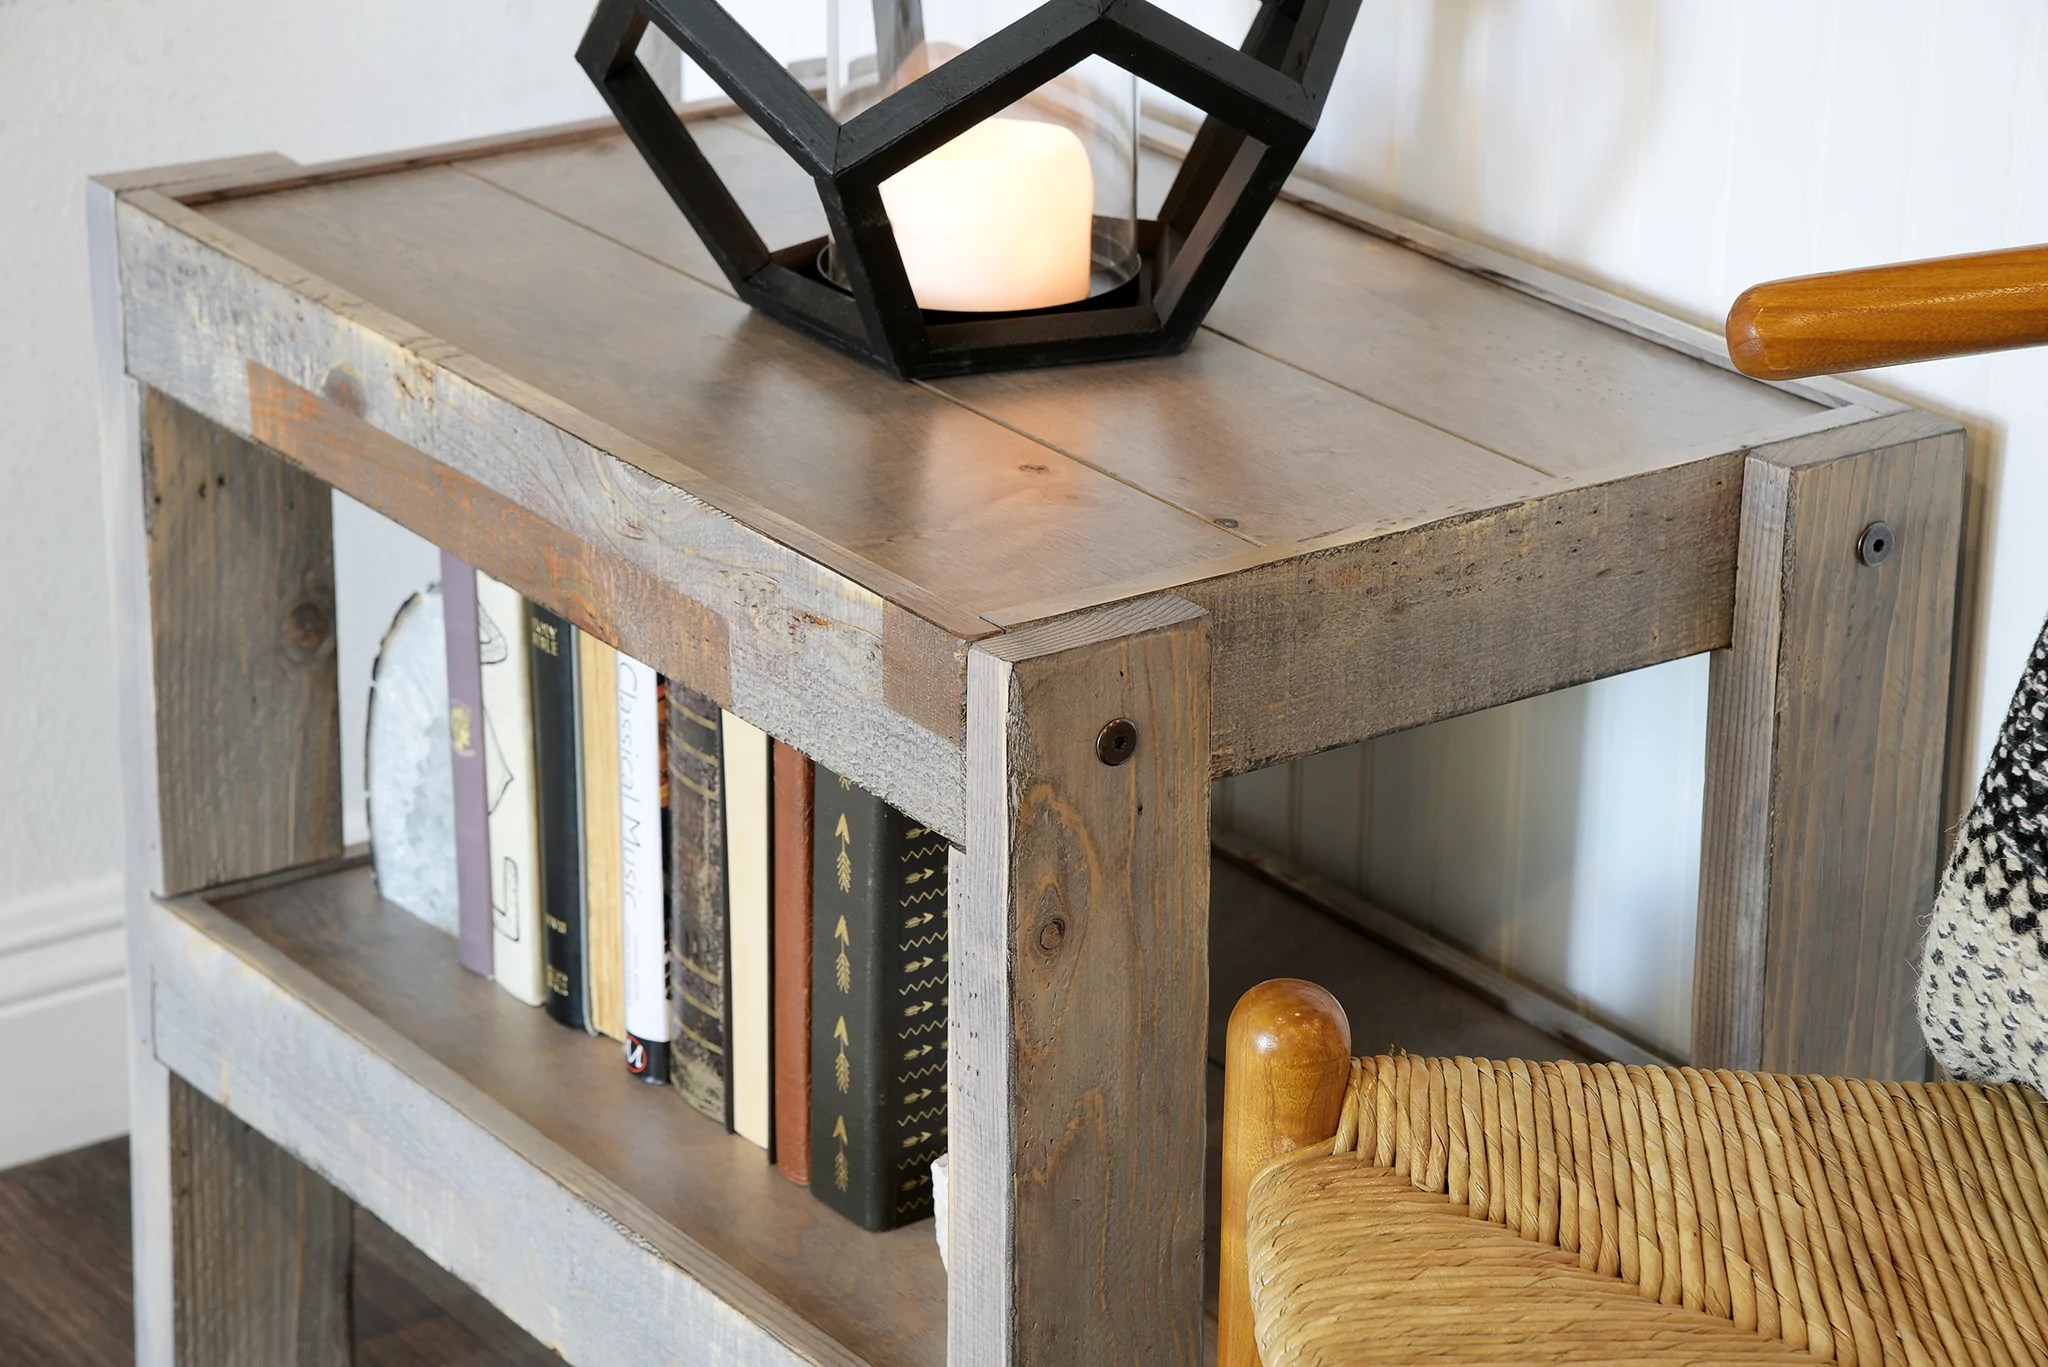 Rustic Wood End Table Gray Rustic Reclaimed Pallet Wood Style Beach House Coastal End Table Nightstand Presearth Lakewood